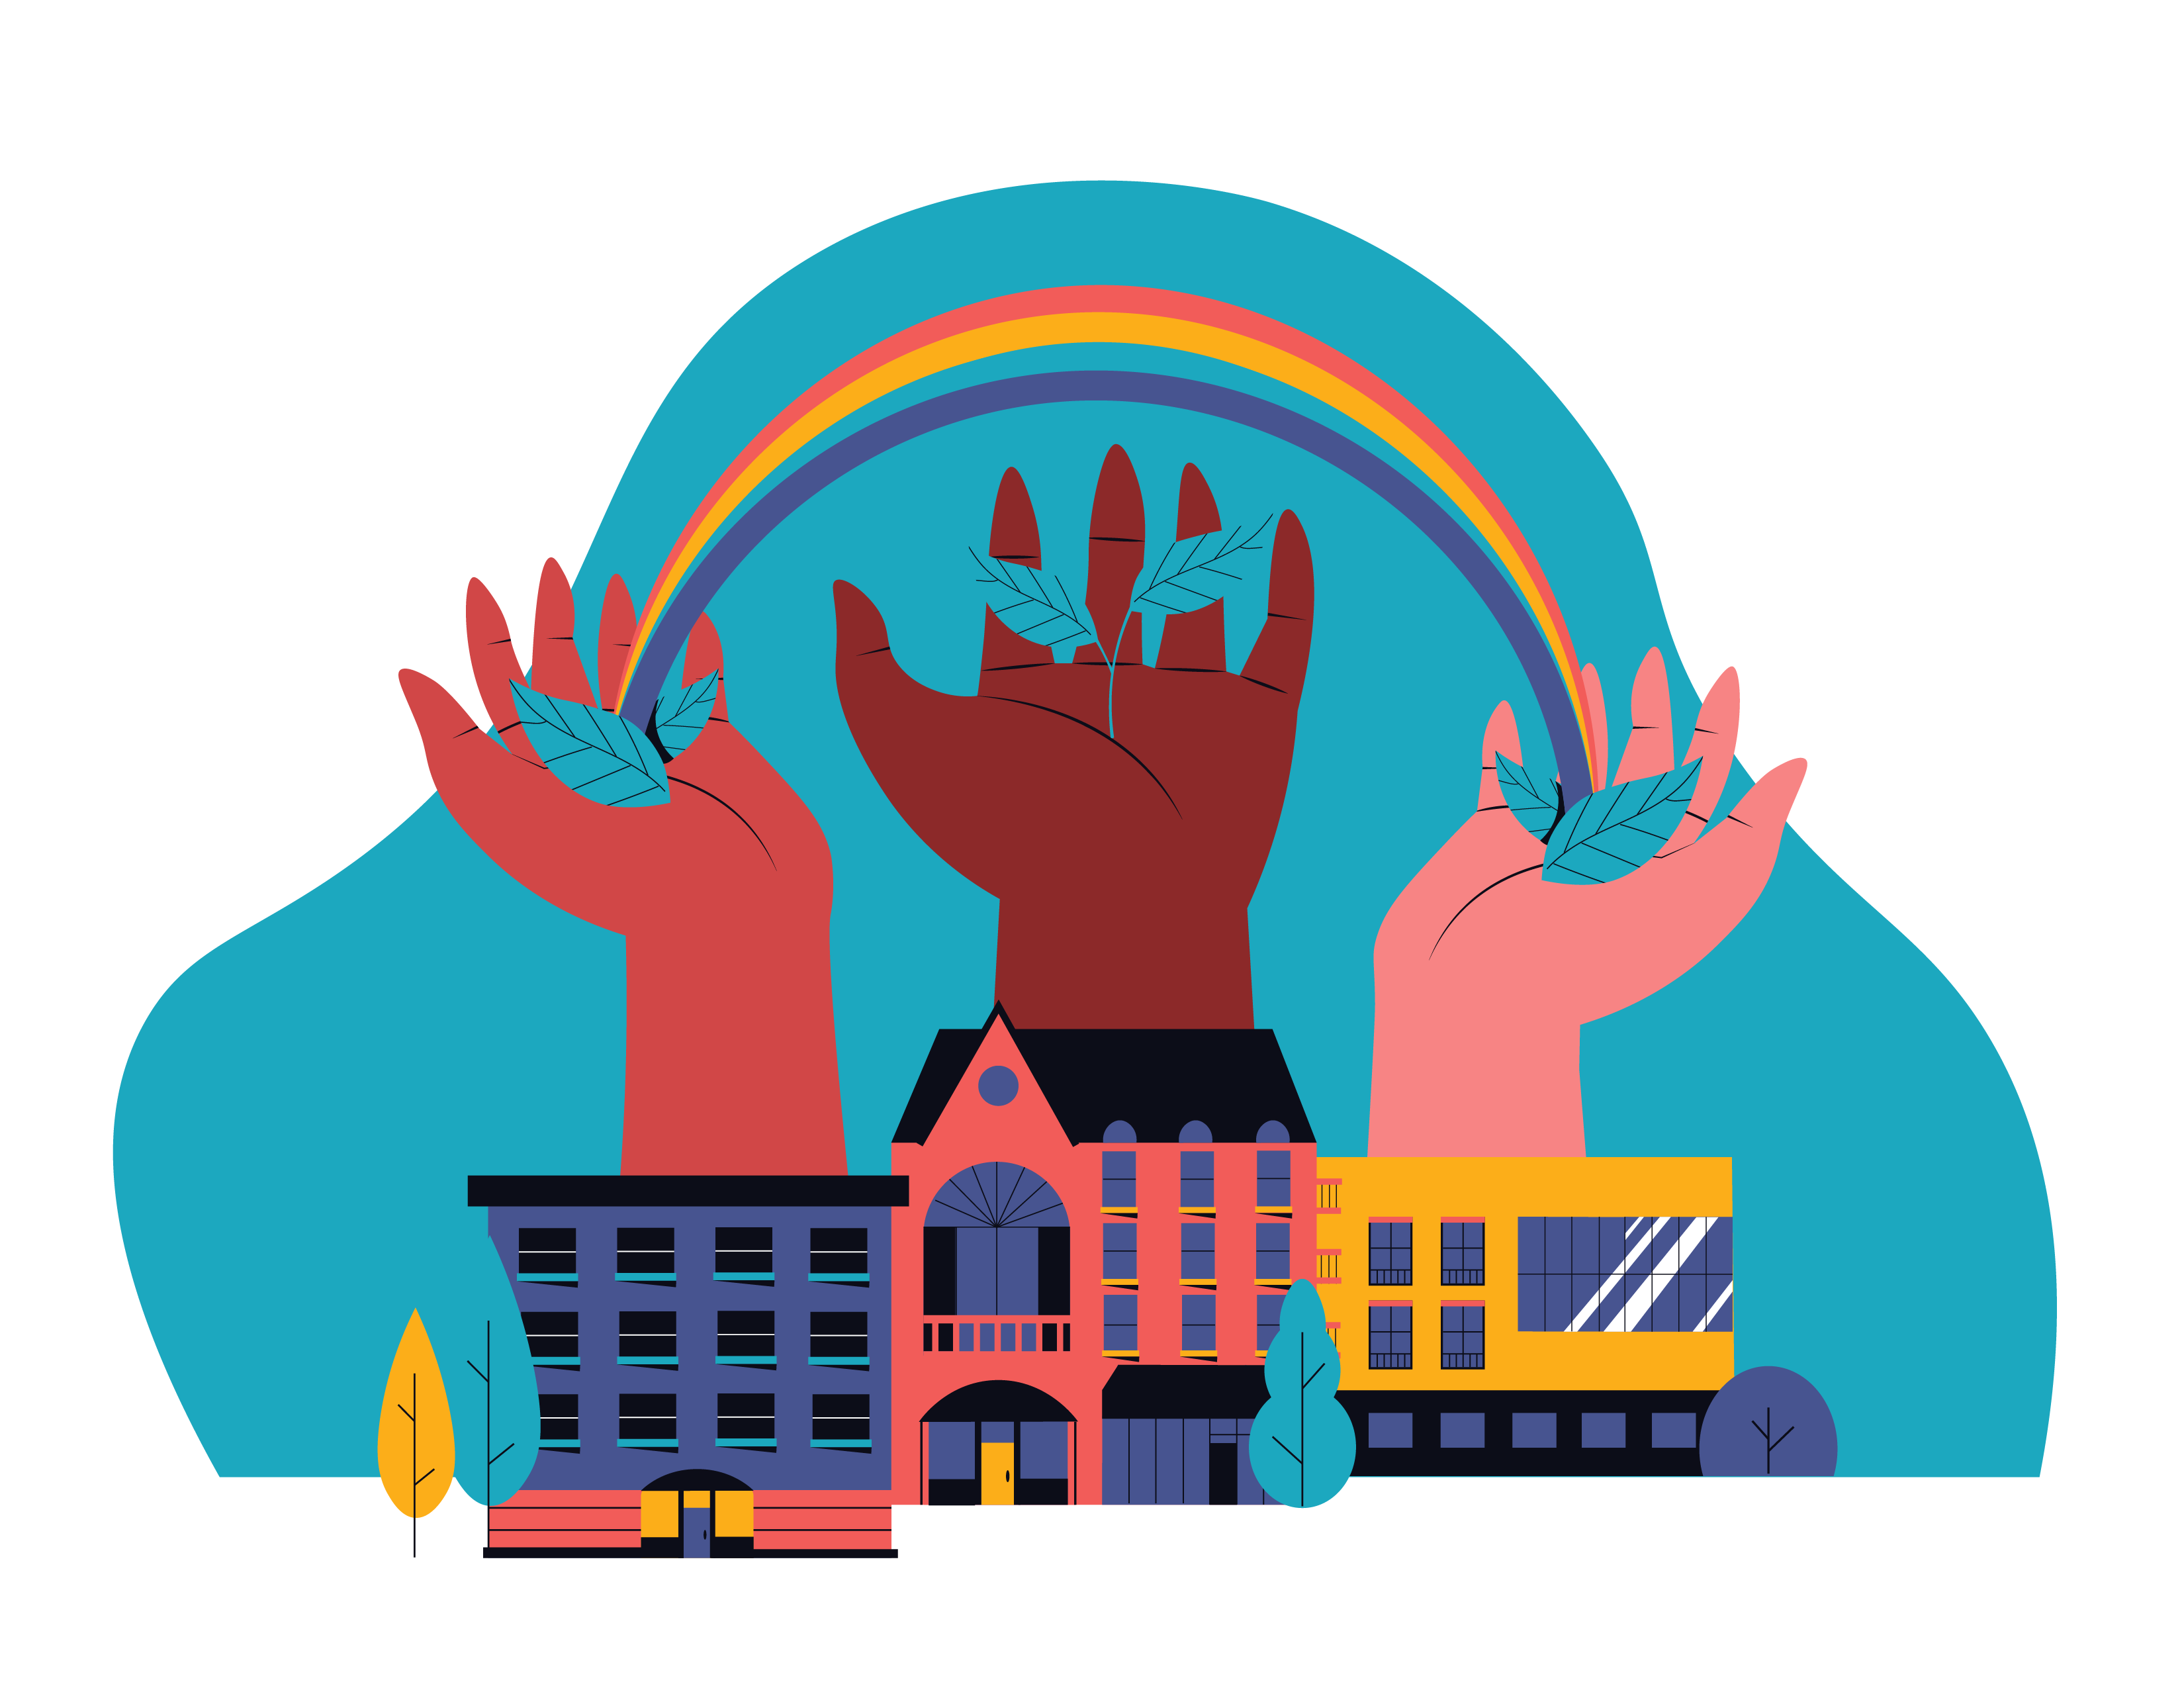 Ensure place-based inclusion and create resilient and equitable communities illustration